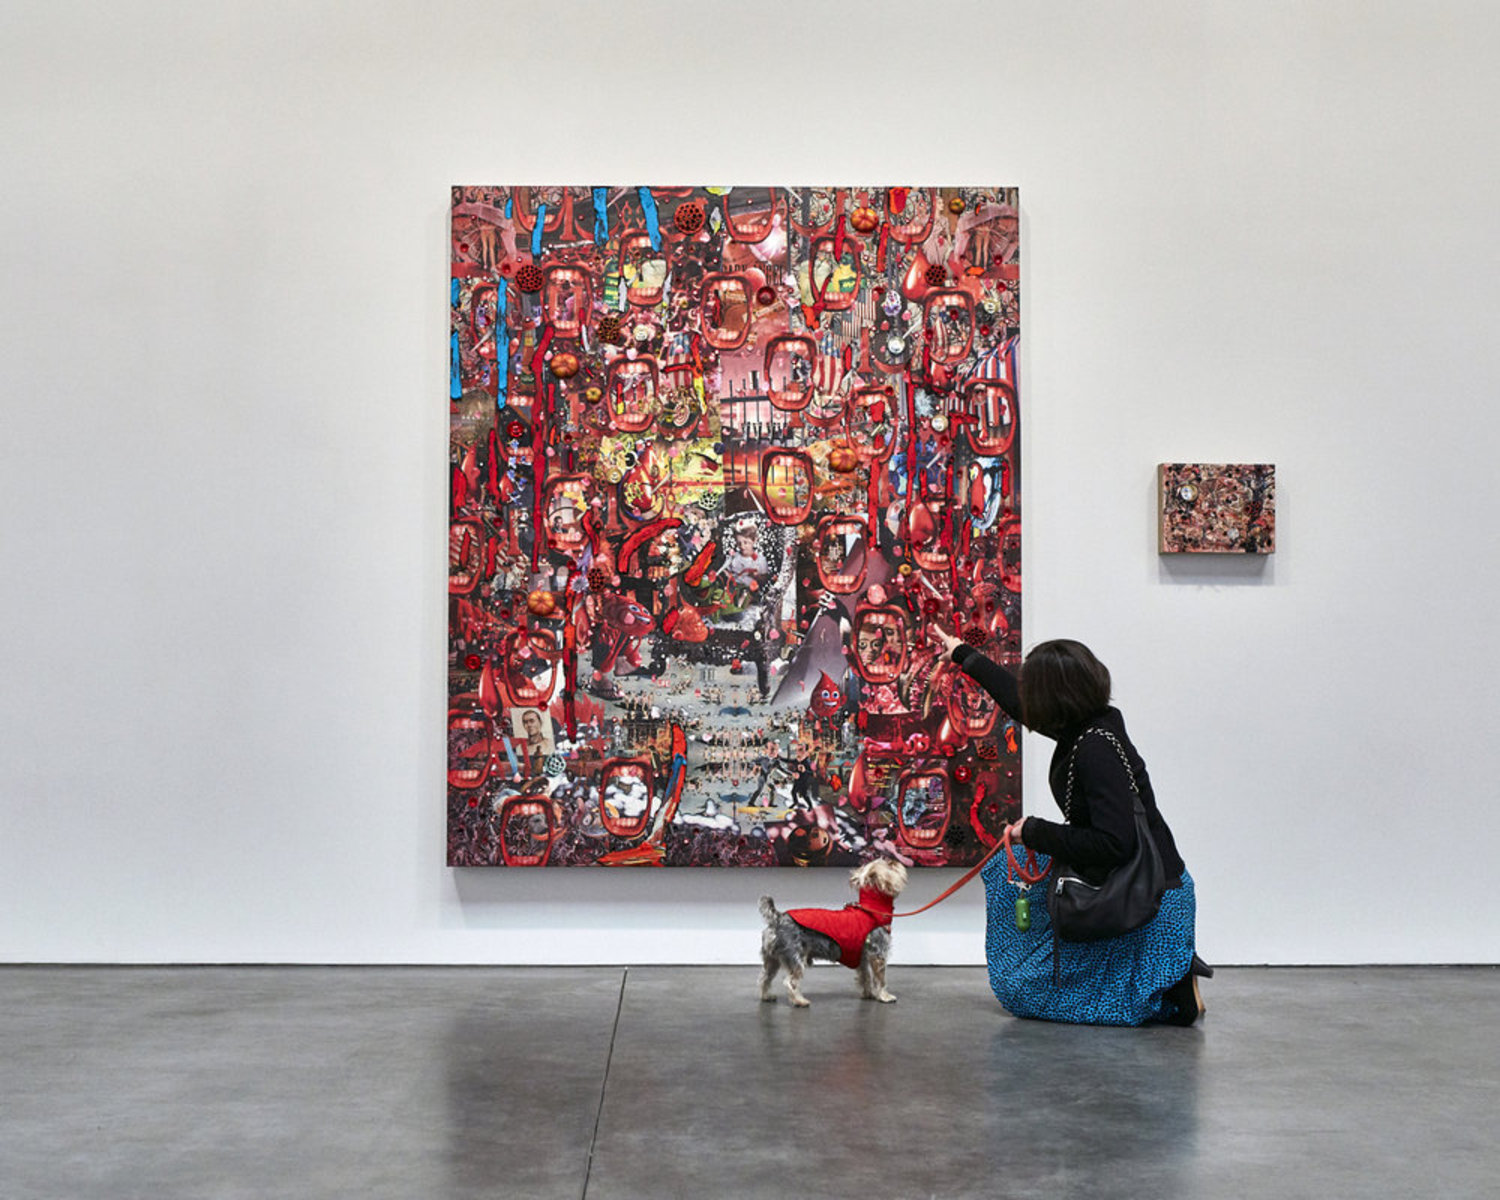 The color red is not visible to a dog's eyes, however this didn't stop Rocky from an interest in the surface and textures of this Elliott Hundley painting on view at Andrea Rosen Gallery.